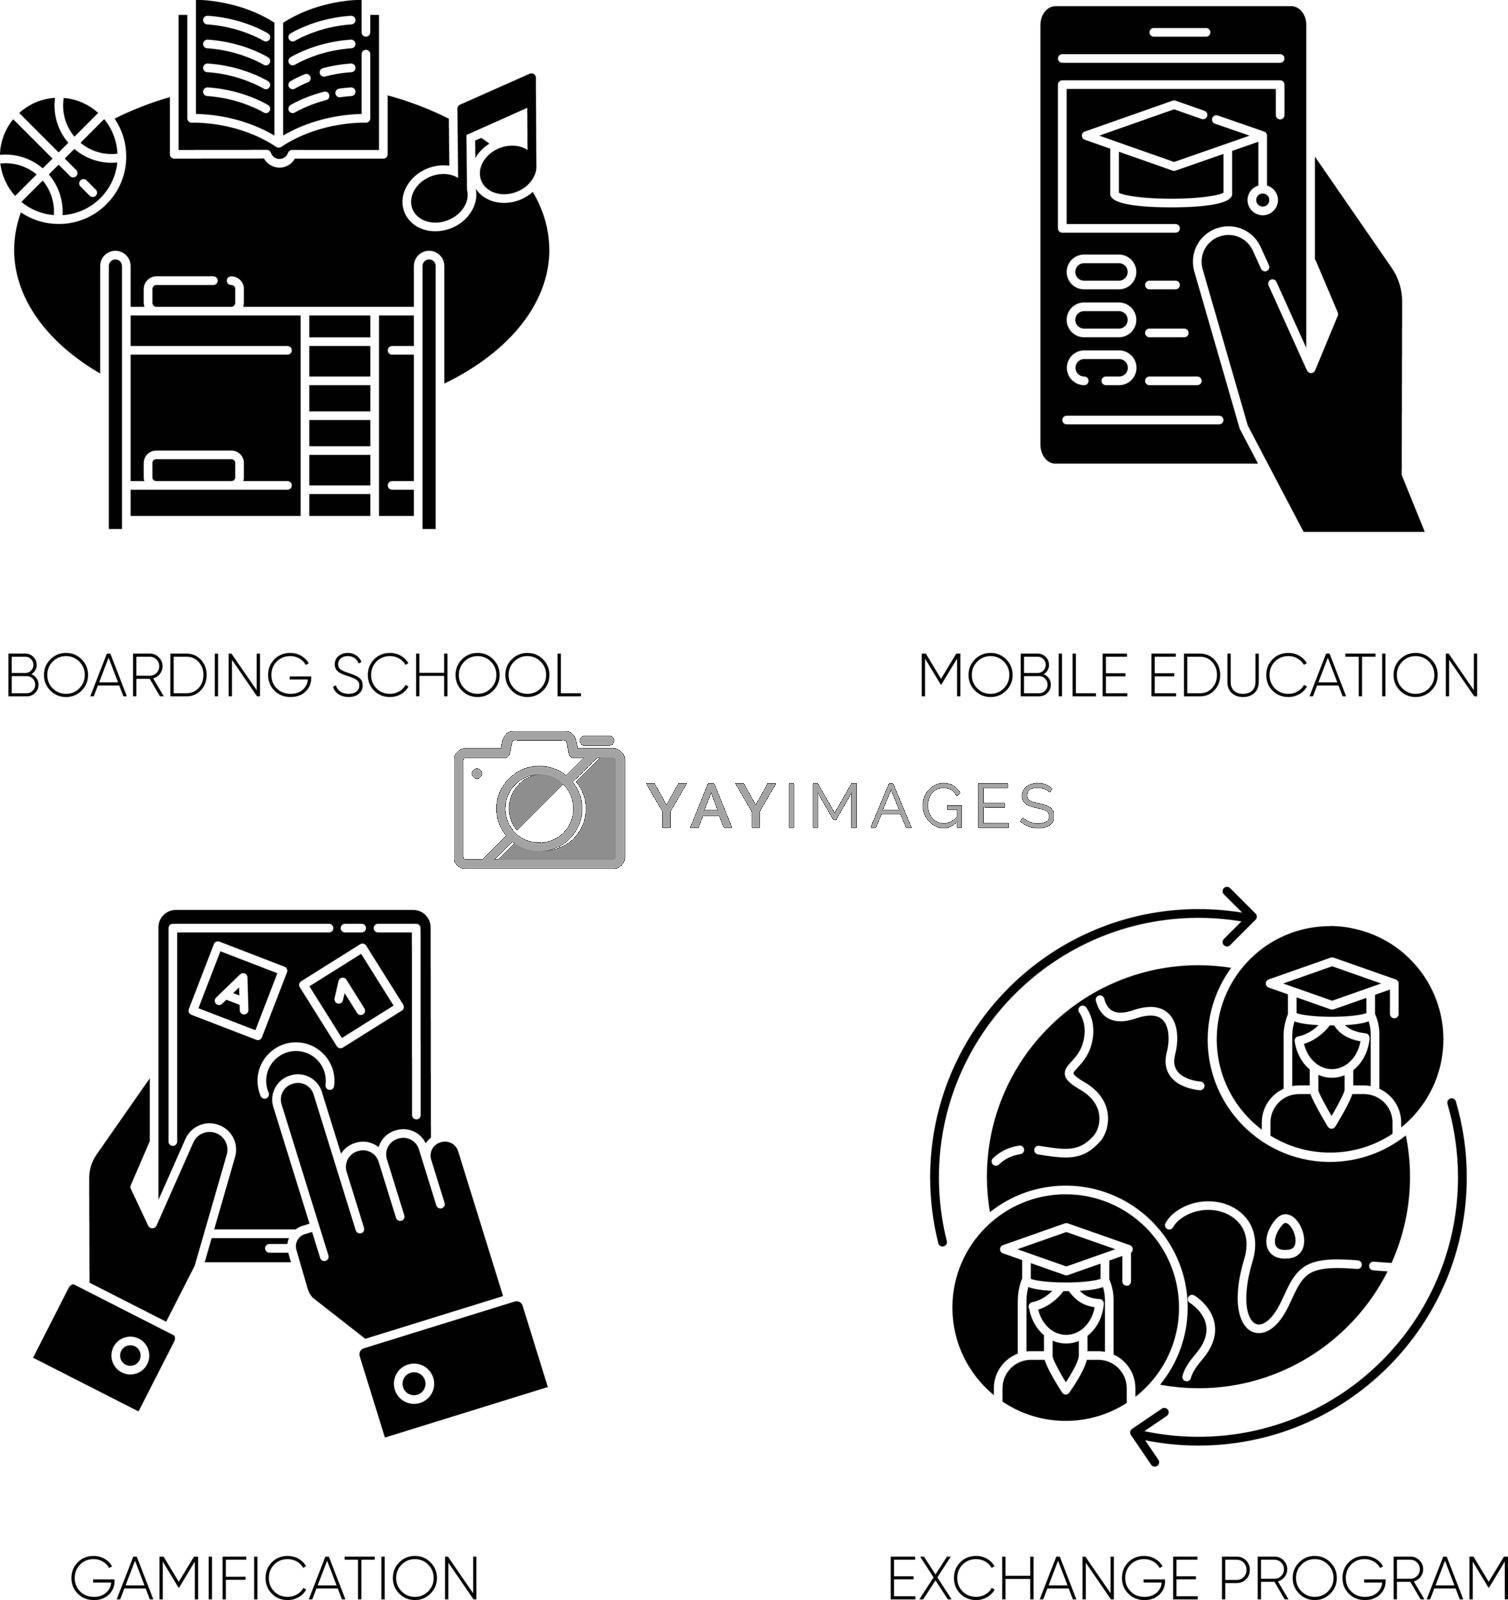 Modern learning opportunities black glyph icons set on white space. Boarding school, mobile education, gamification and student exchange program silhouette symbols. Vector isolated illustrations